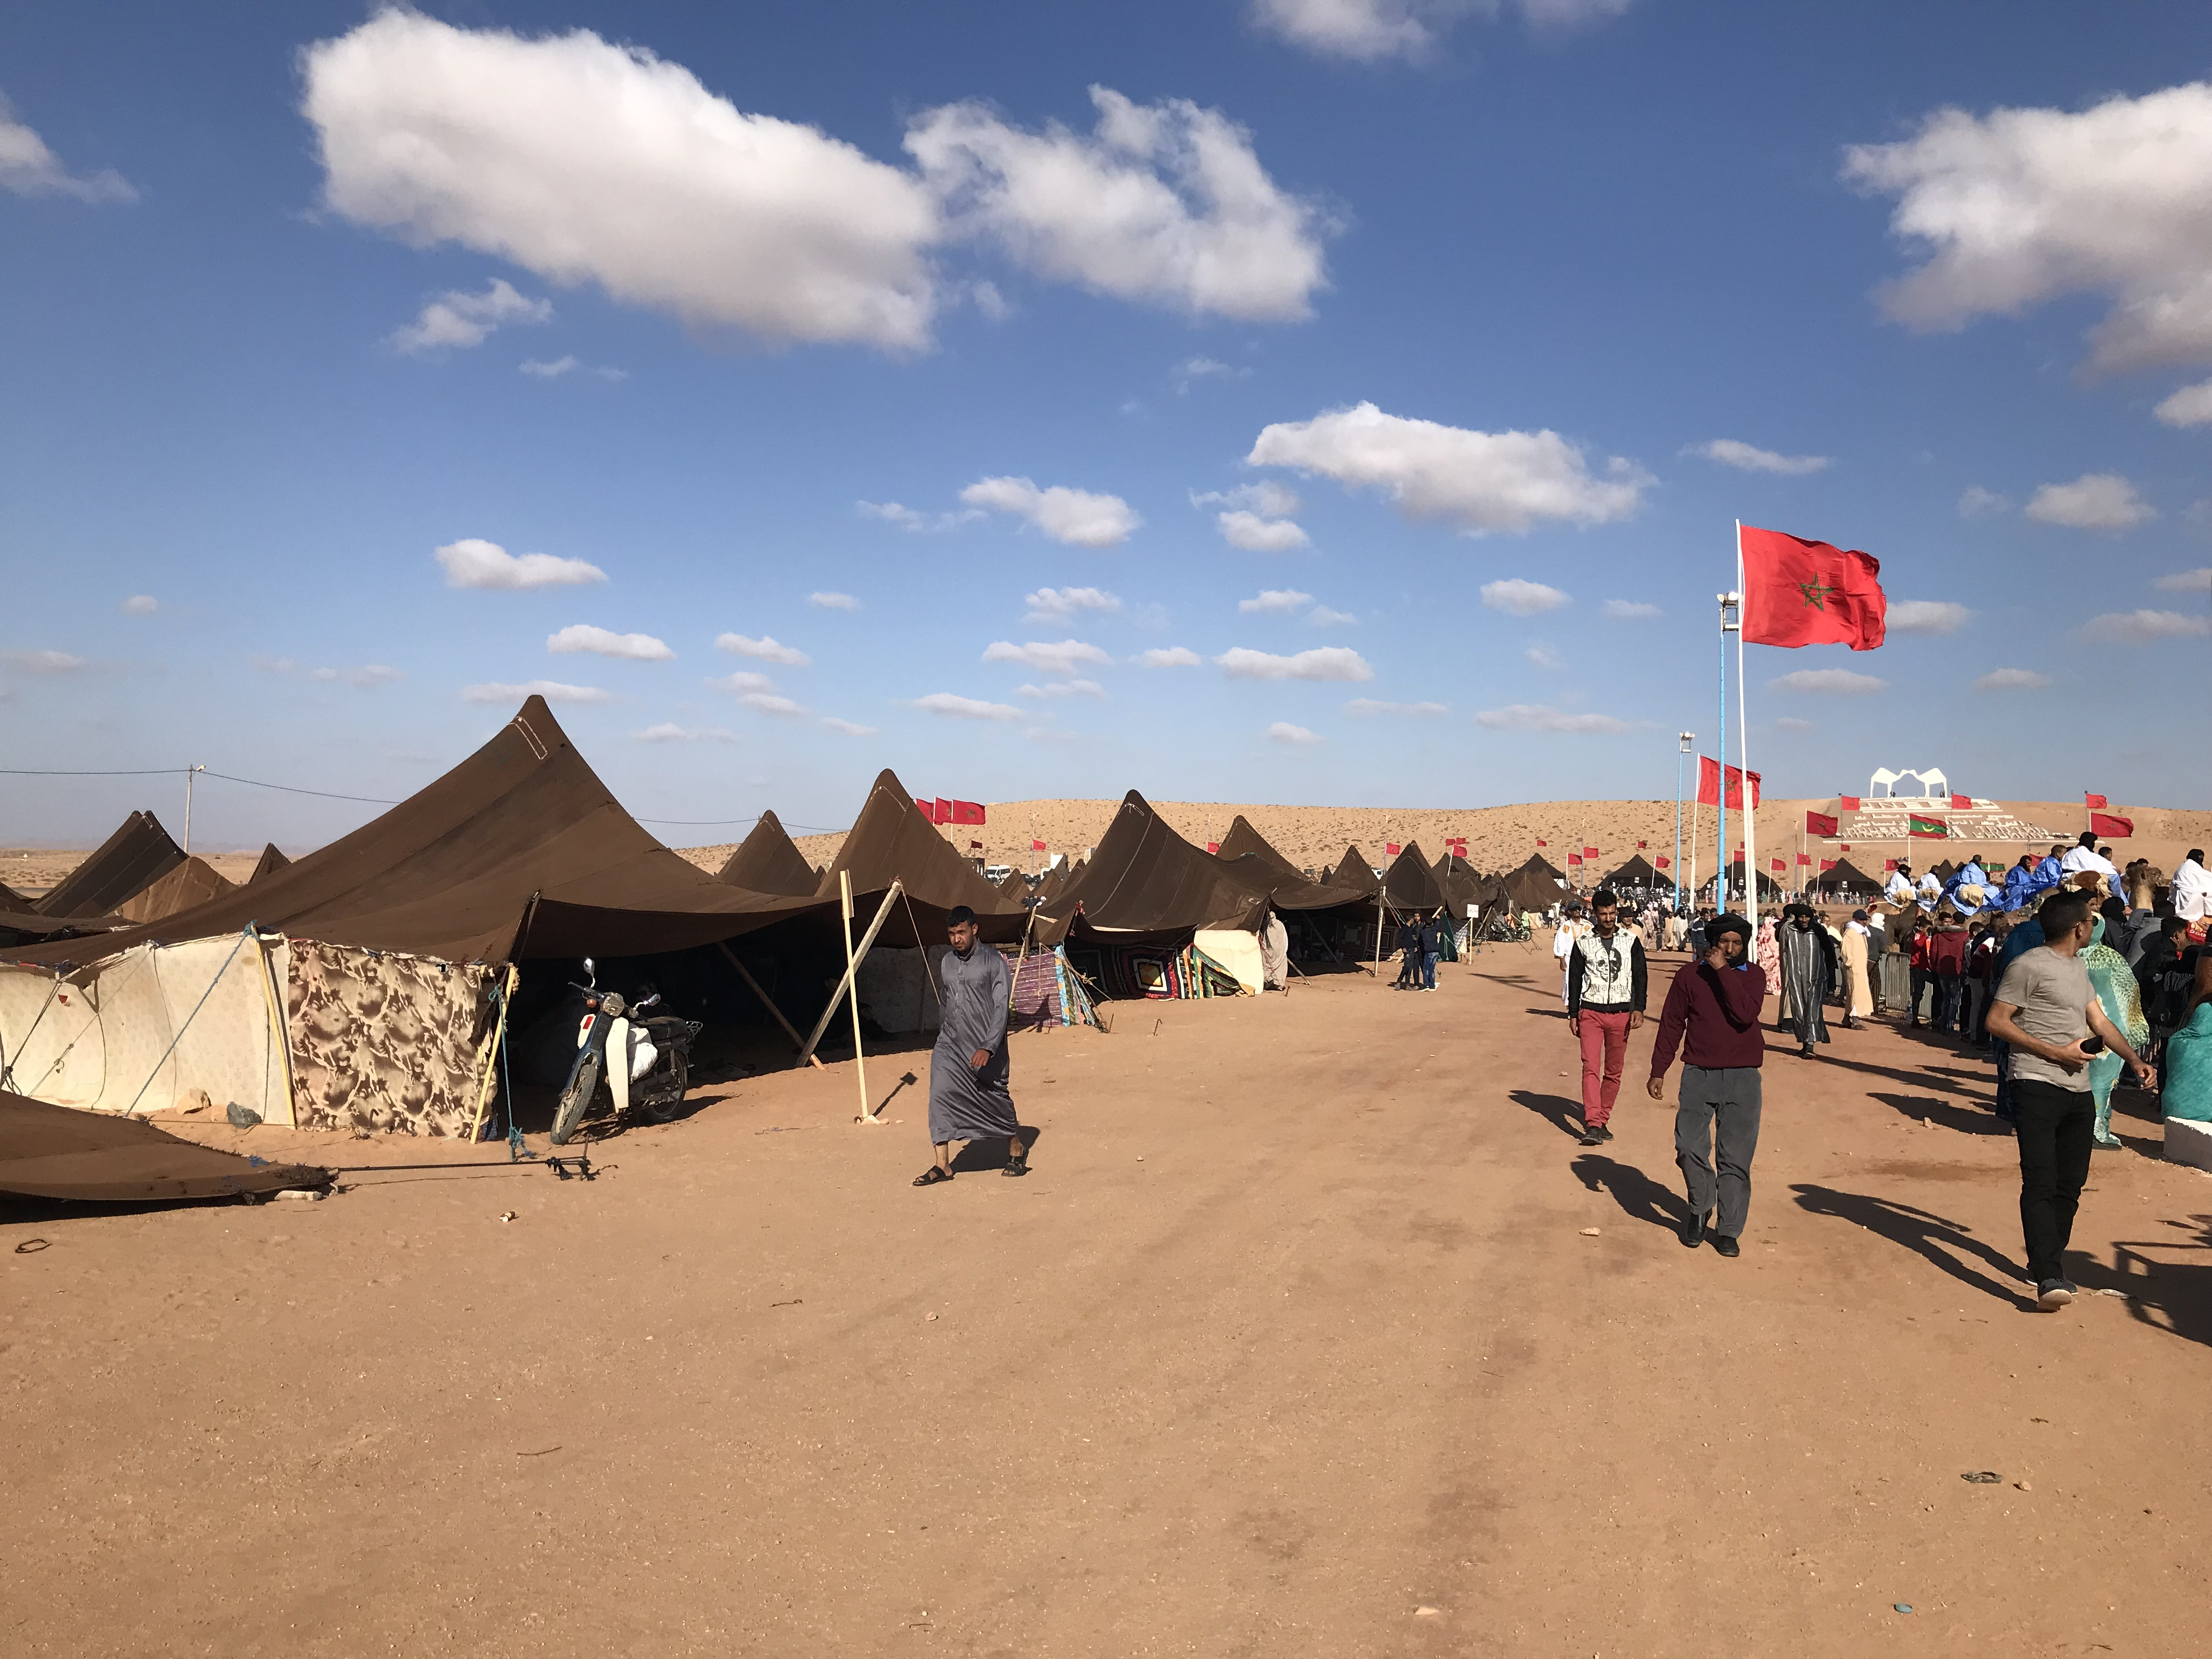 Nomad tents at the Tan Tan Moussem